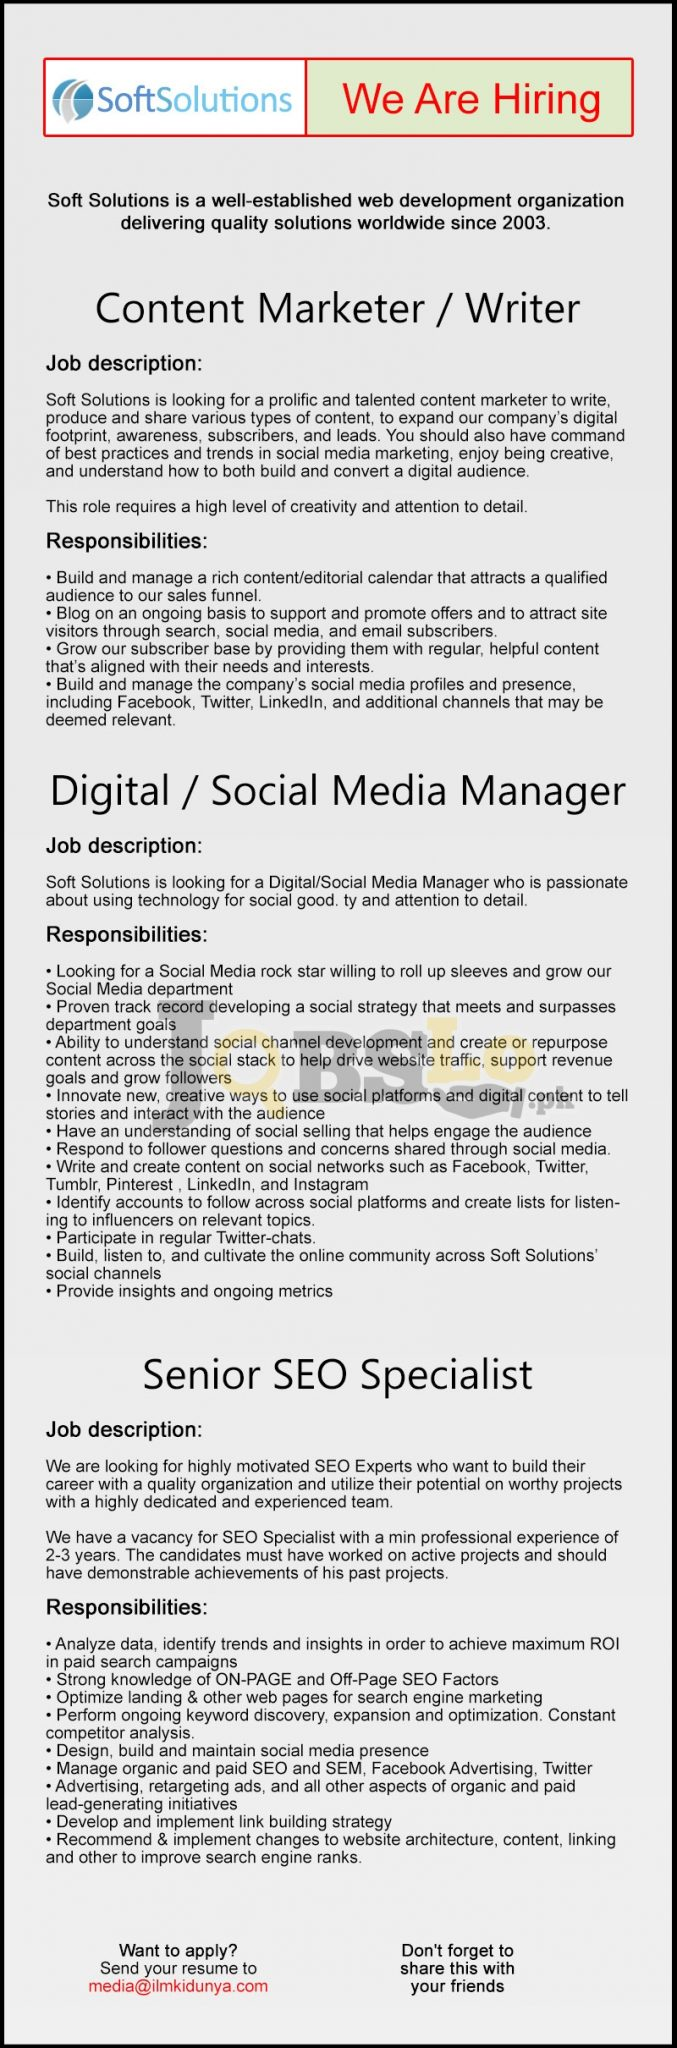 Soft Solution Organization Jobs